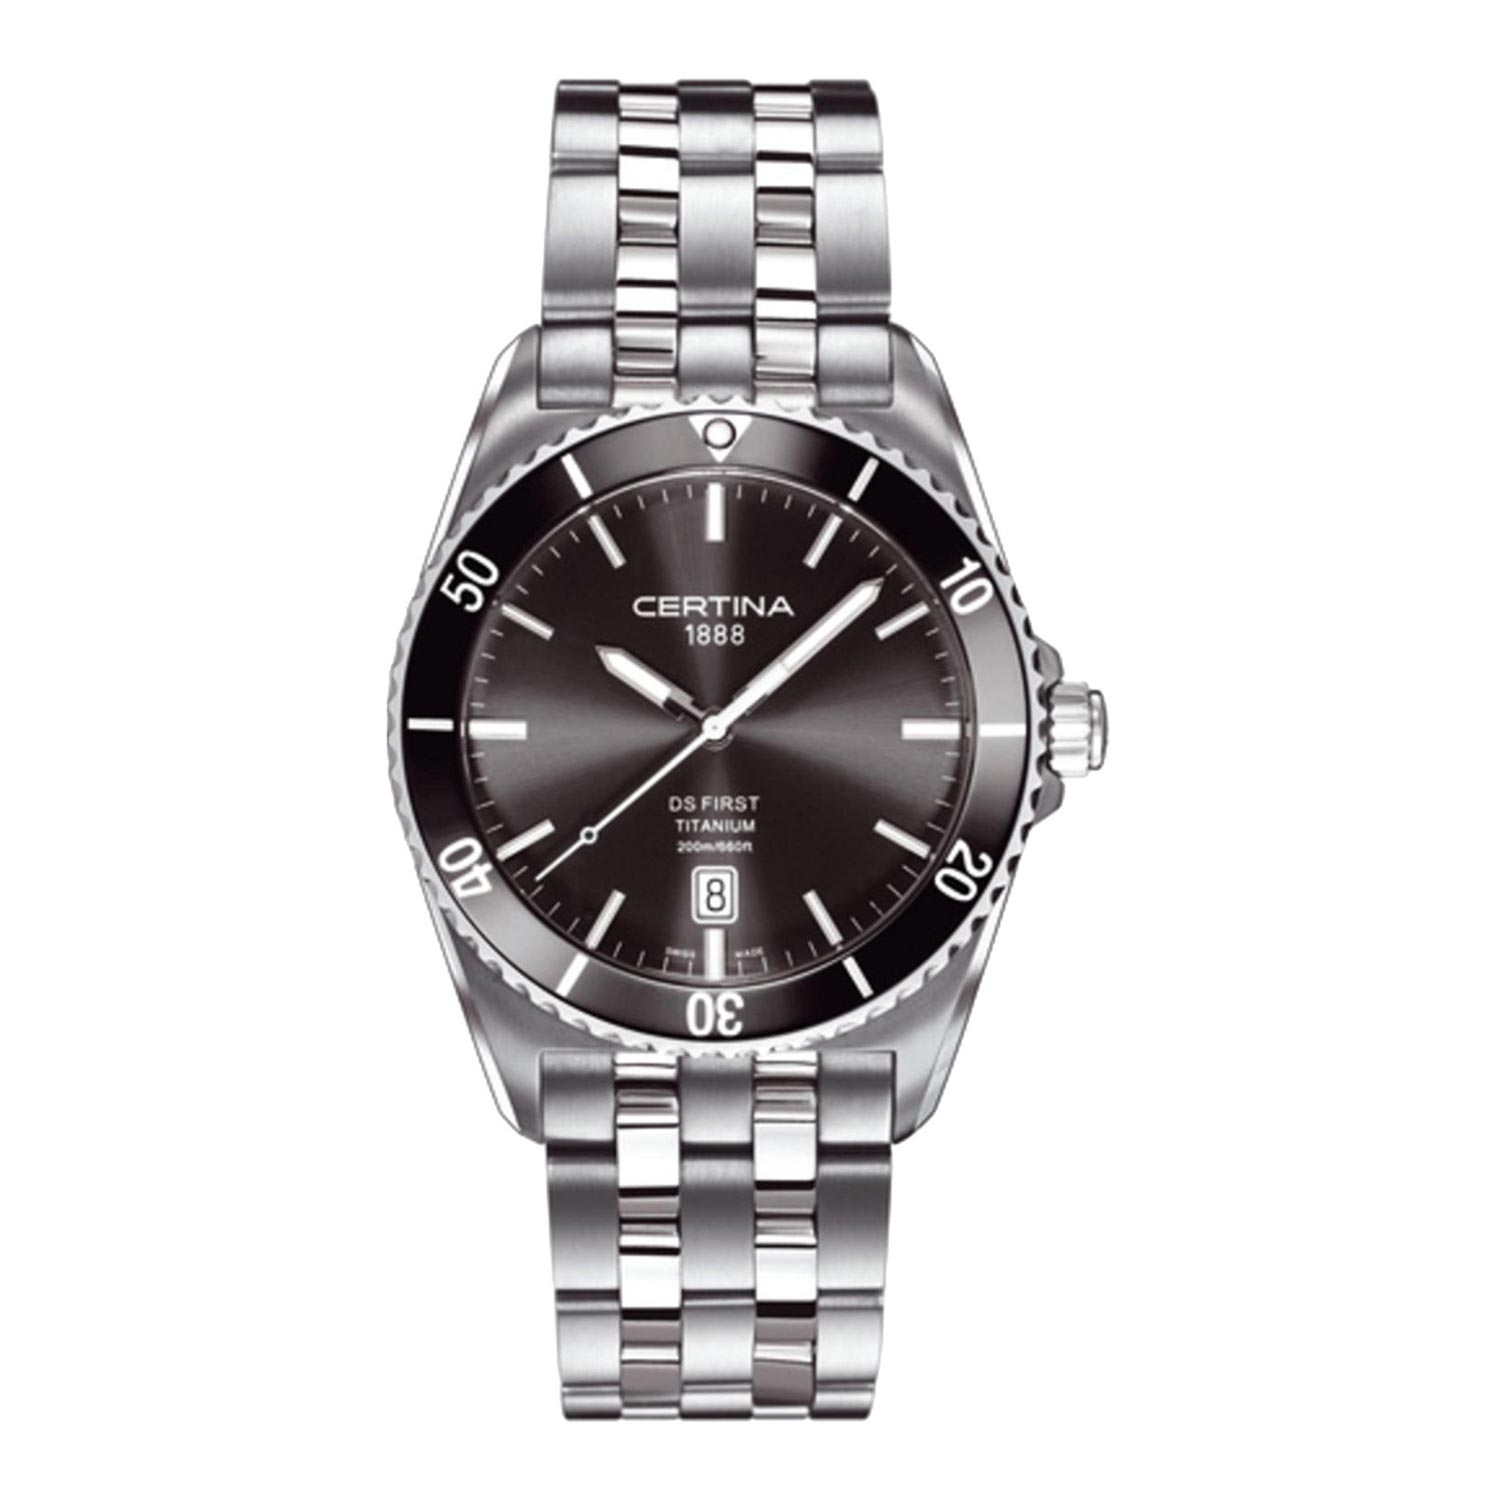 Certina-DS-First-Titanium-C014.410.44.081.00-analoge-Herrenuhr-aus-Titan-und-Keramik